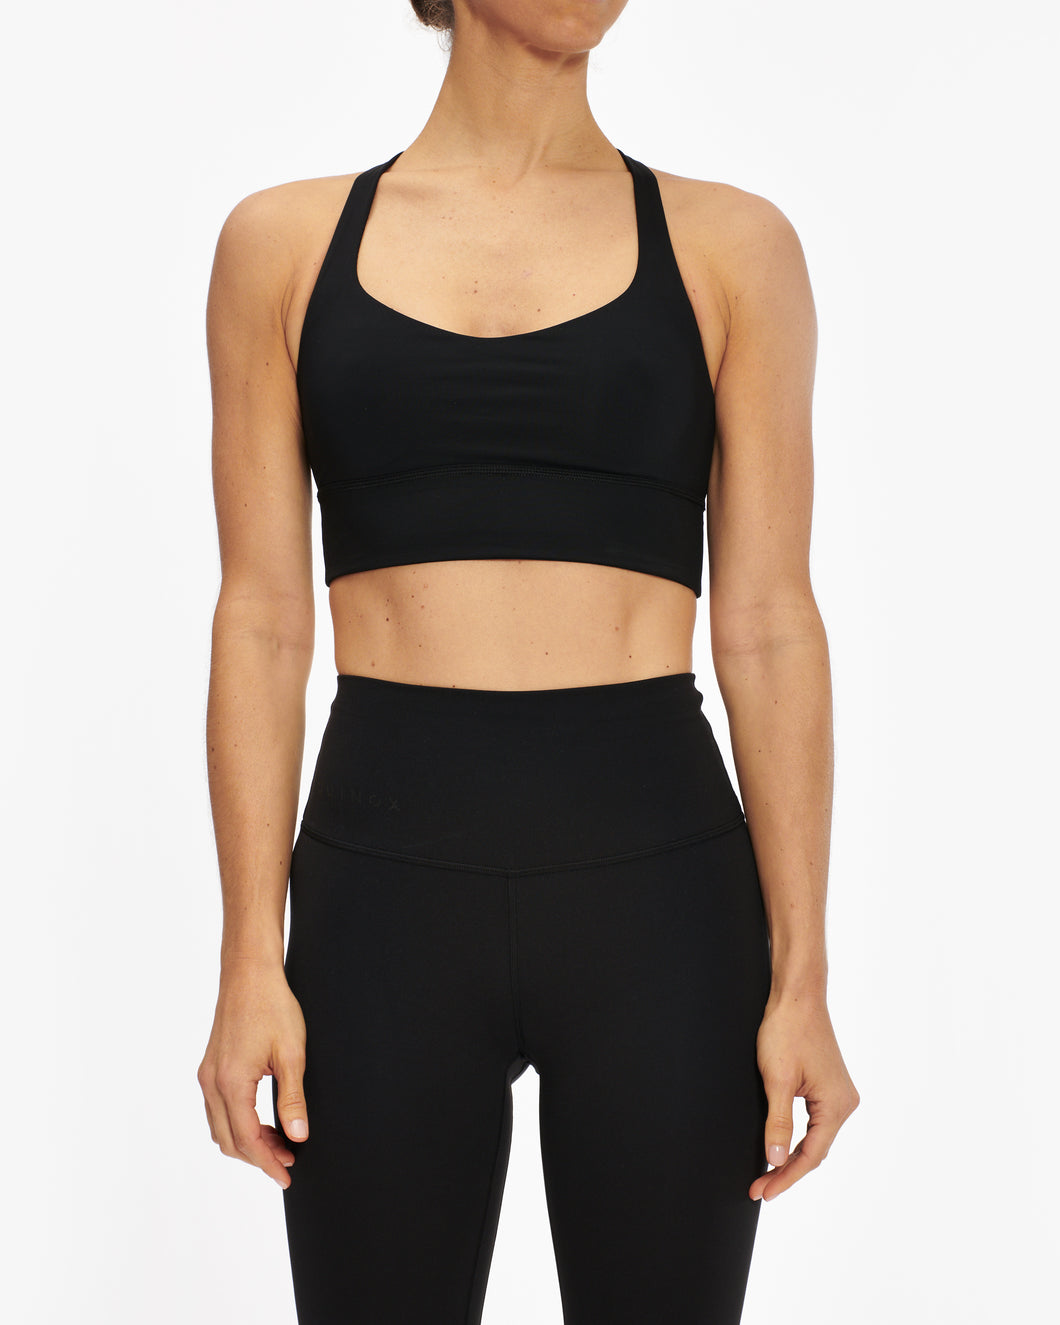 LULULEMON X EQUINOX FREE TO BE BRA WILD LONG LINE SPORTS BRA